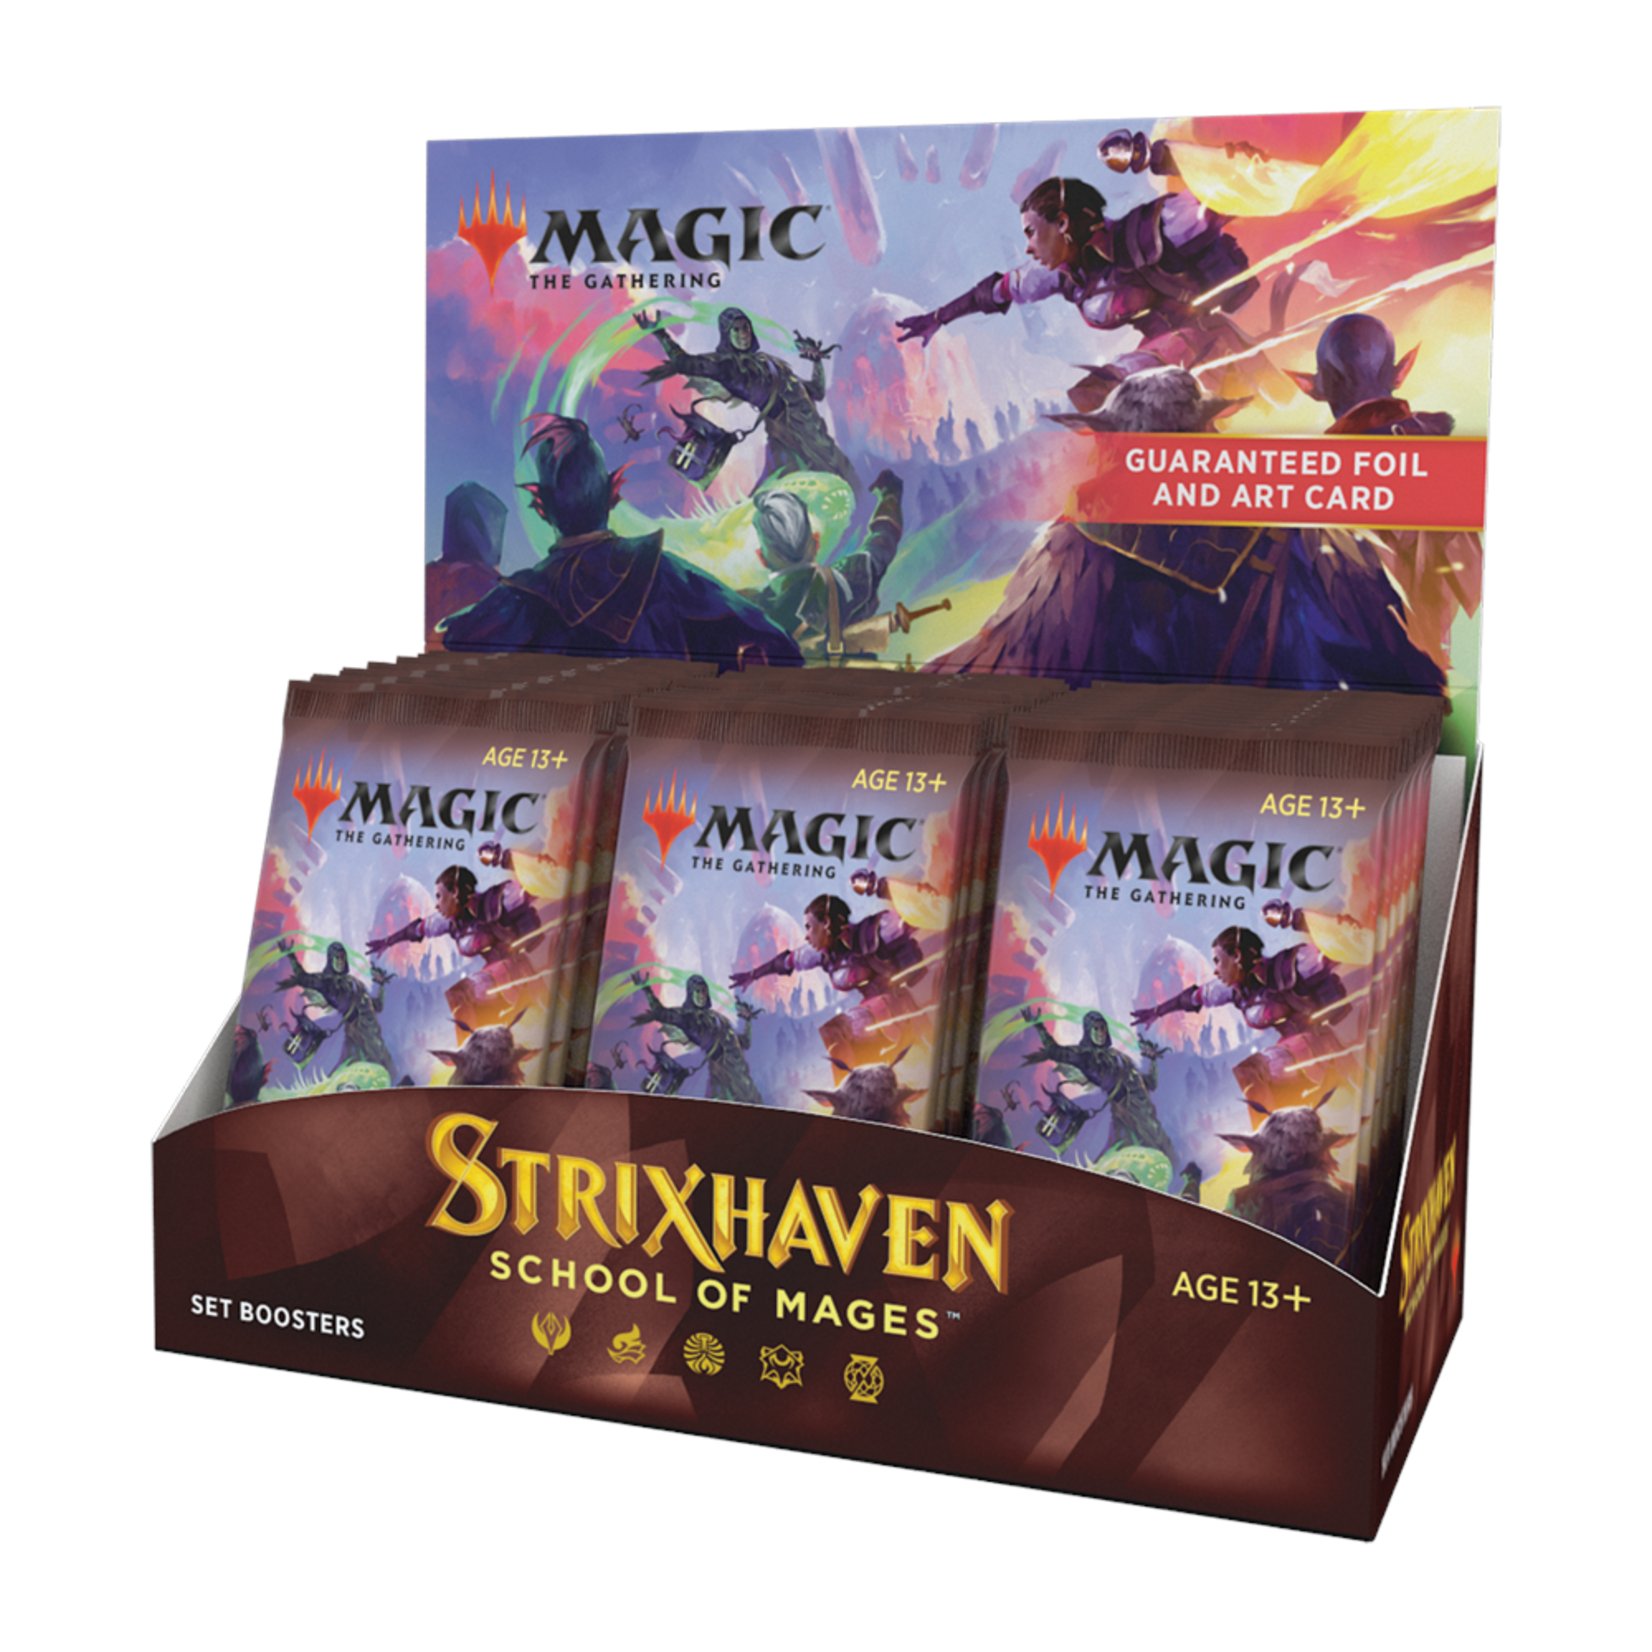 Wizards of the Coast Strixhaven Set Booster Box Display